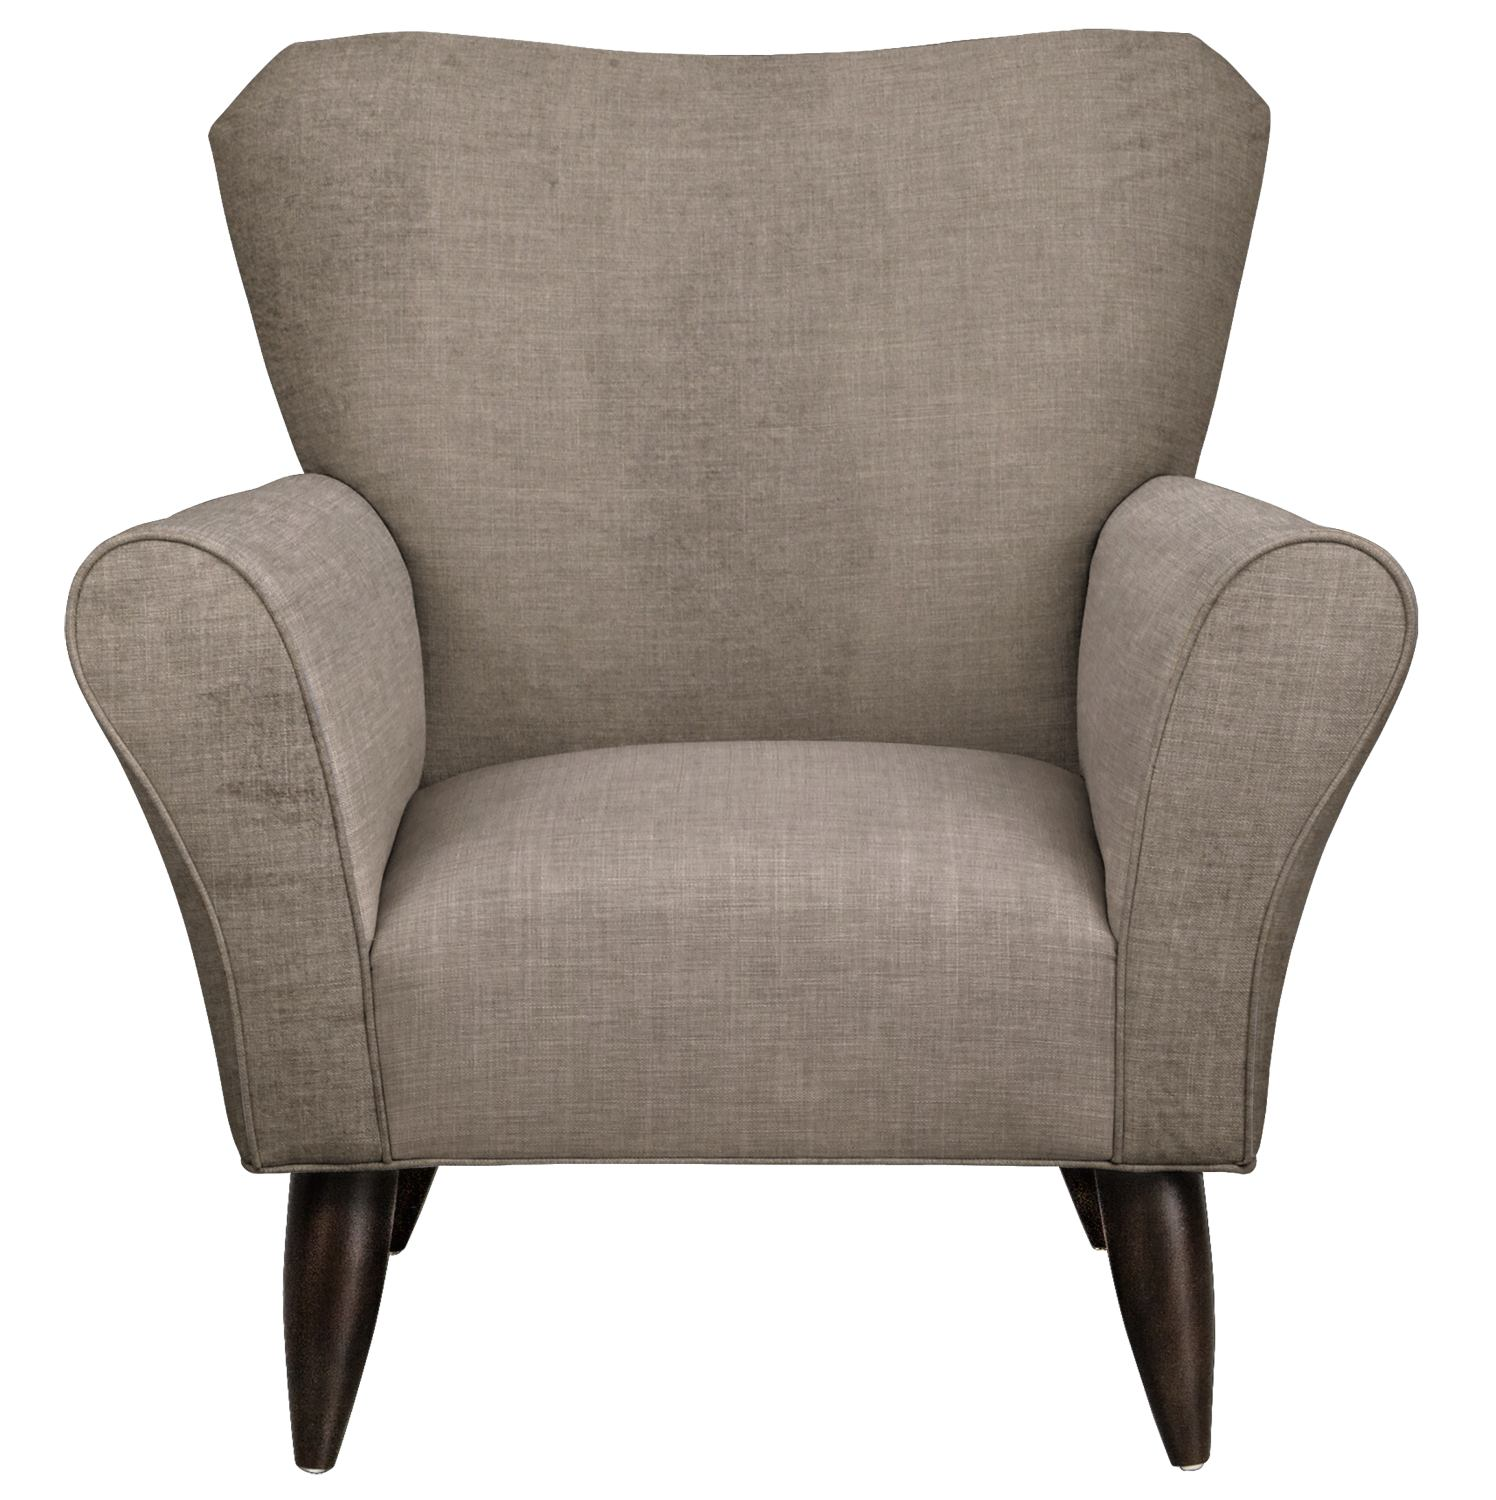 Living Room Furniture - Jessie Chair w/ Oakley III Granite Fabric